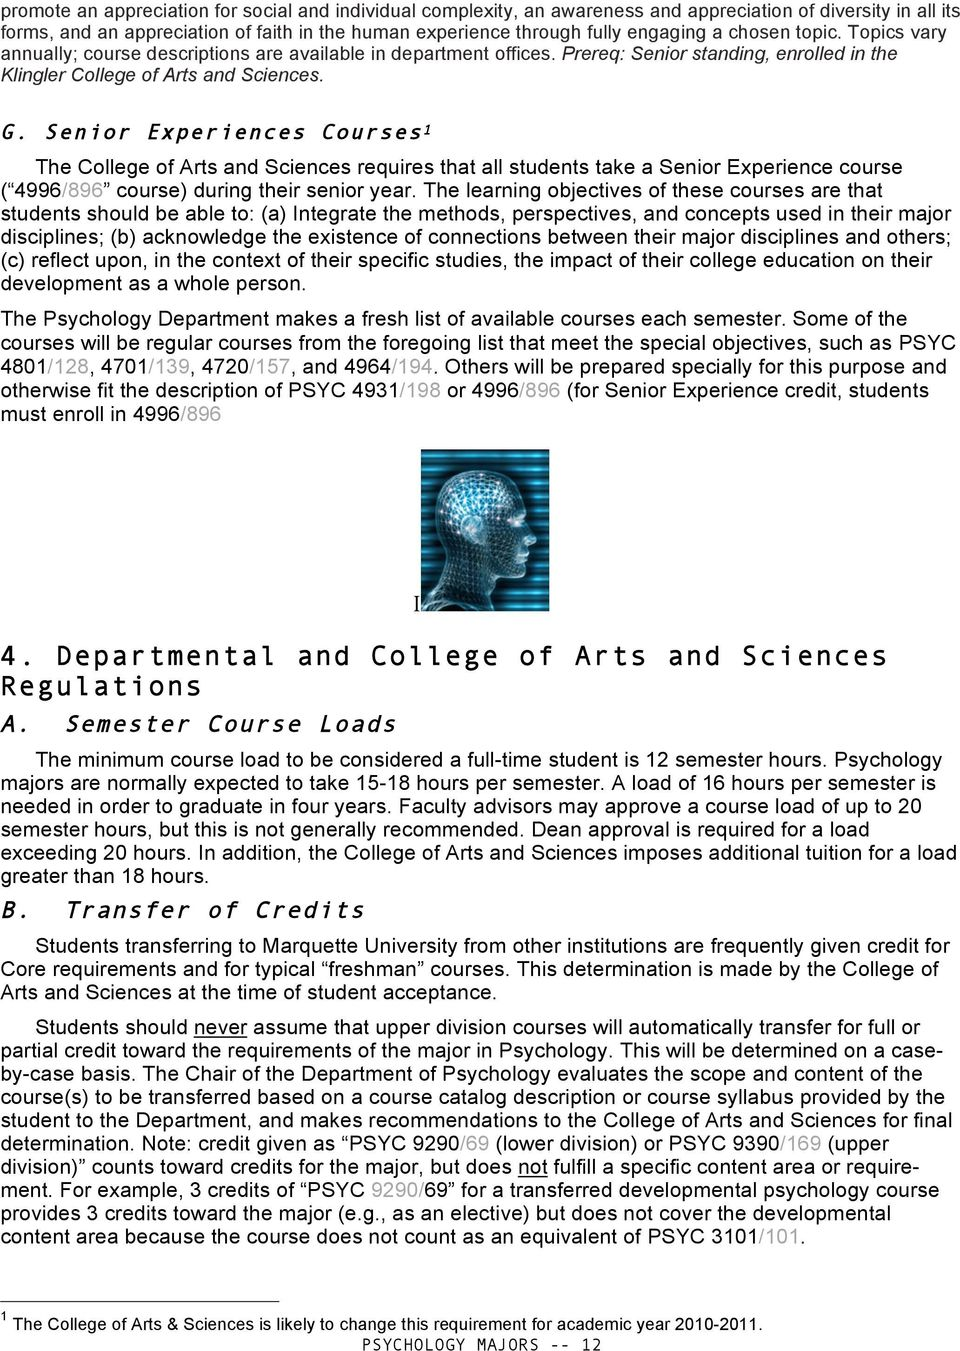 Senior Experiences Courses 1 The College of Arts and Sciences requires that all students take a Senior Experience course ( 4996/896 course) during their senior year.